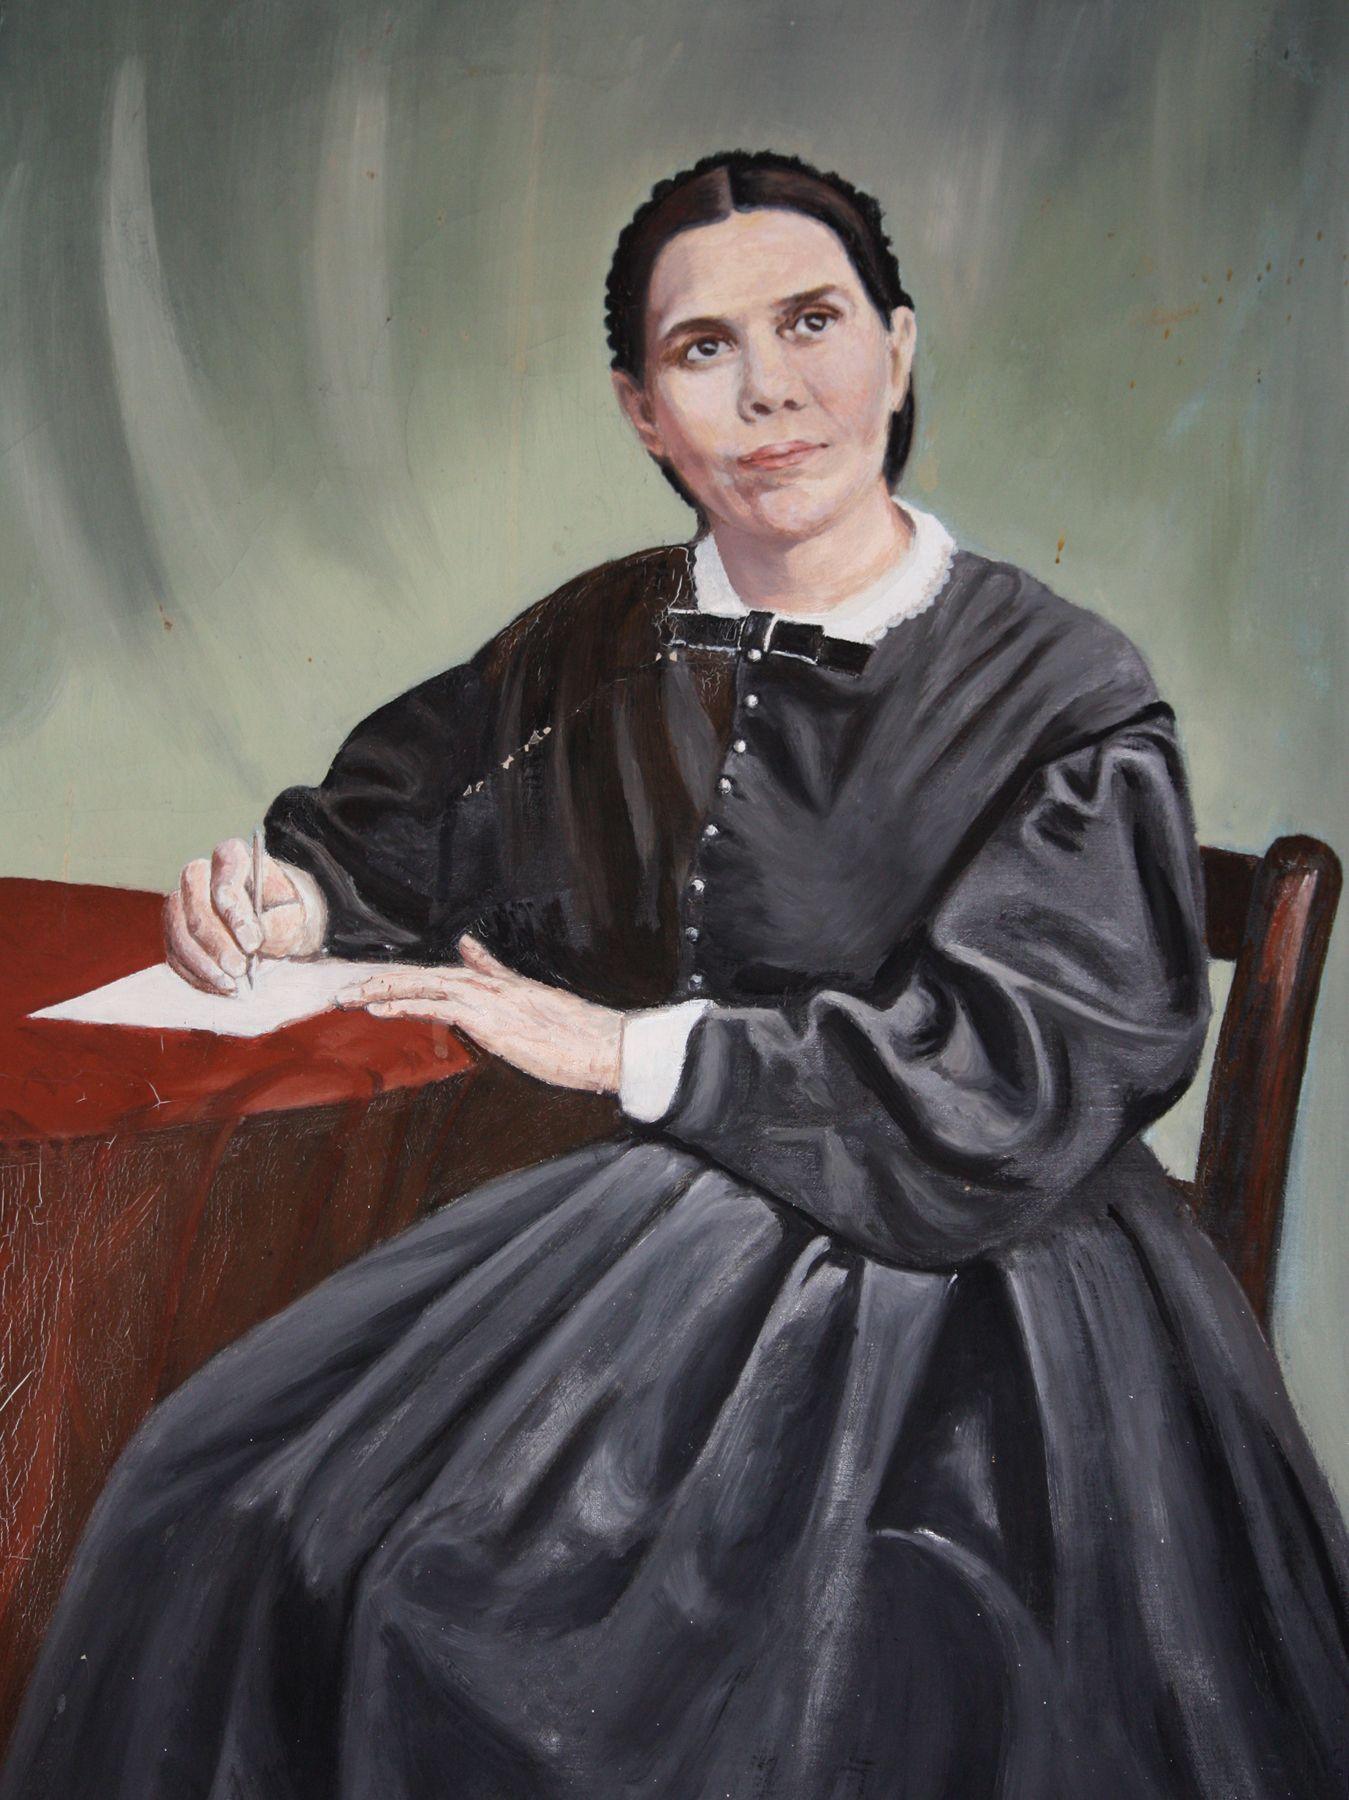 """Who Was Ellen White? she was a woman of remarkable spiritual gifts who lived most of her life during the nineteenth century (1827-1915), yet through her writings she is still making a revolutionary impact on millions of people around the world. """"""""Pure air, sunlight, abstemiousness, rest, exercise, proper diet, the use of water, trust in divine power--these are the true remedies. Every person should have a knowledge of nature's remedial agencies and how to apply them."""""""